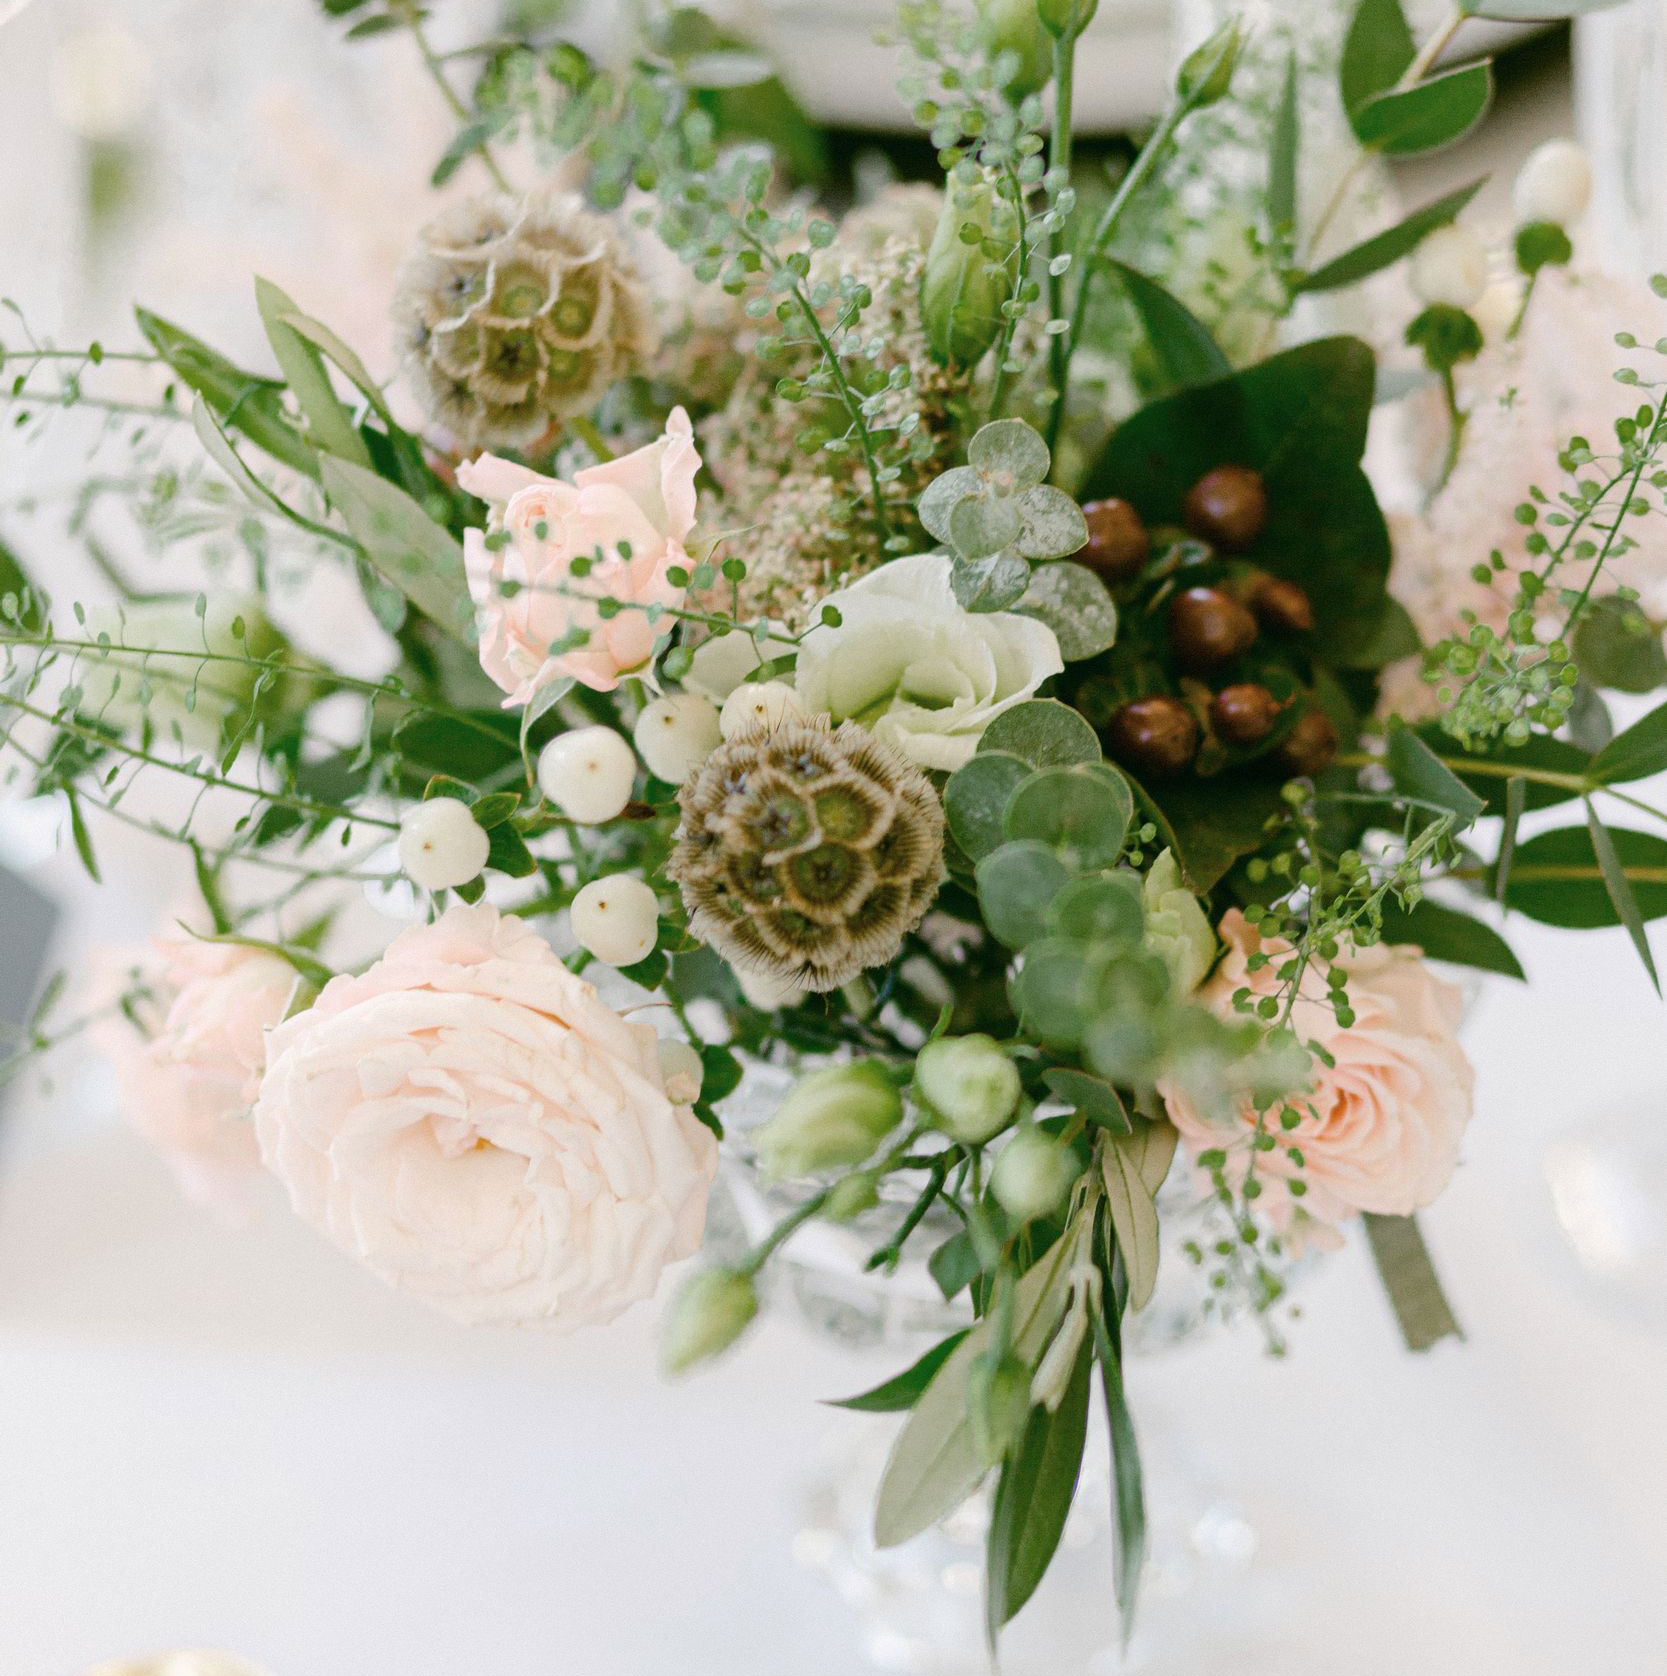 light pink roses complimented by green leaves